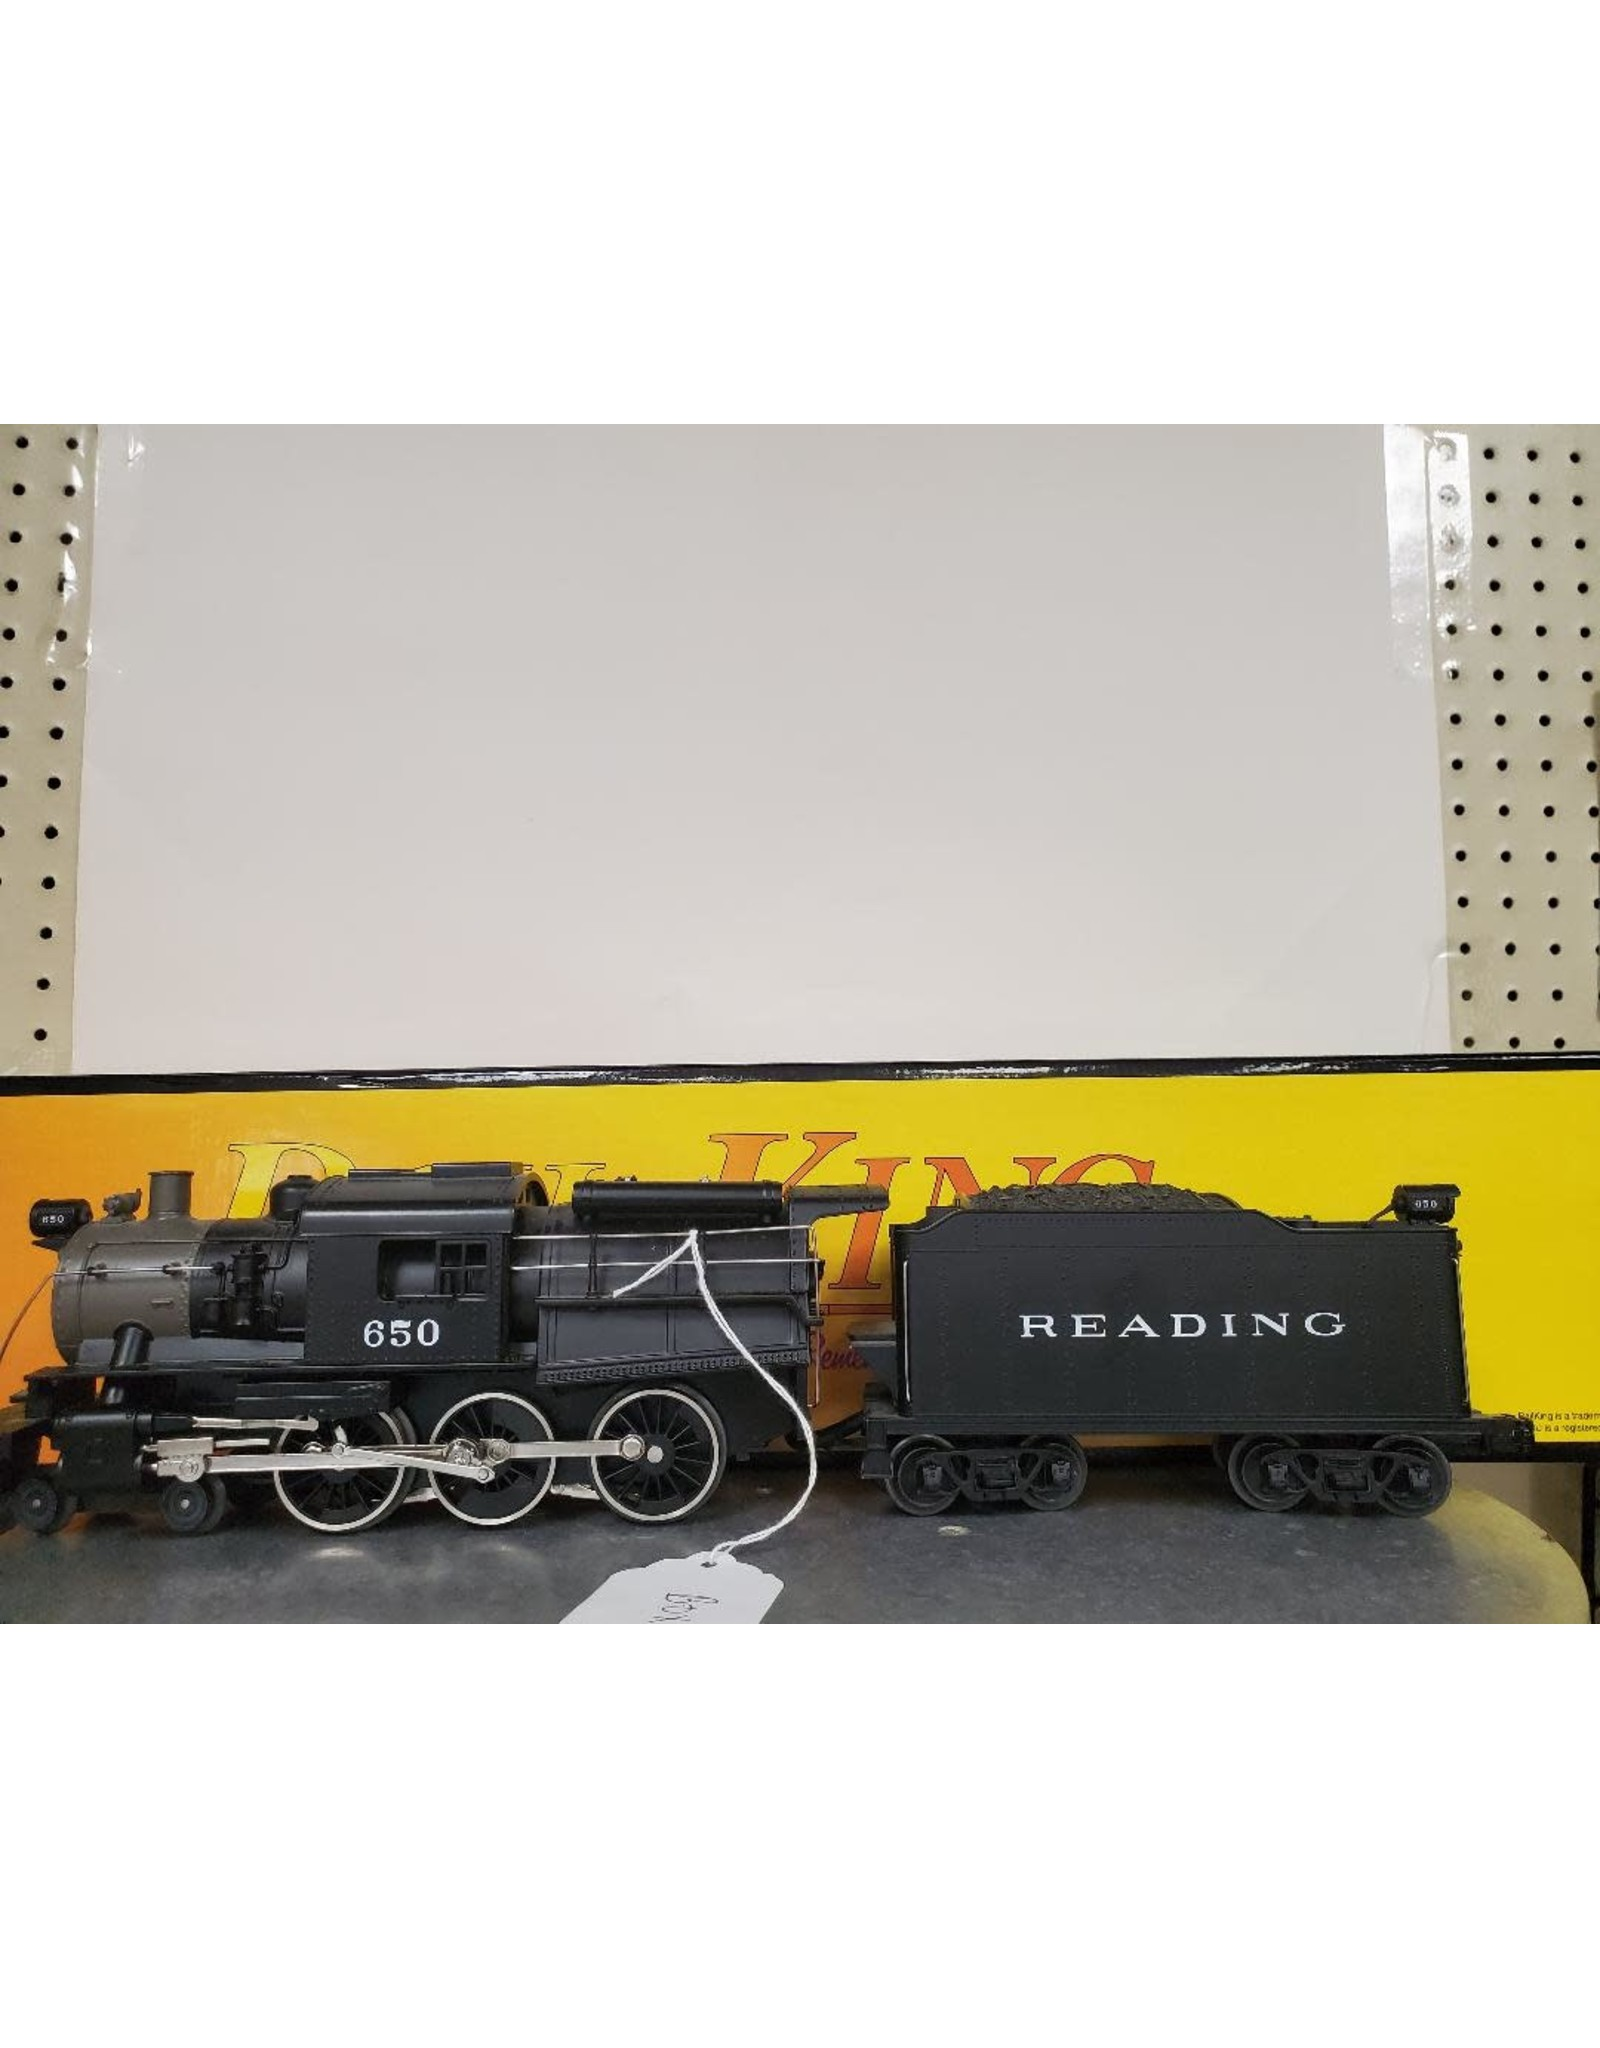 MTH Camelback Reading w/Tender and Proto sound PS2